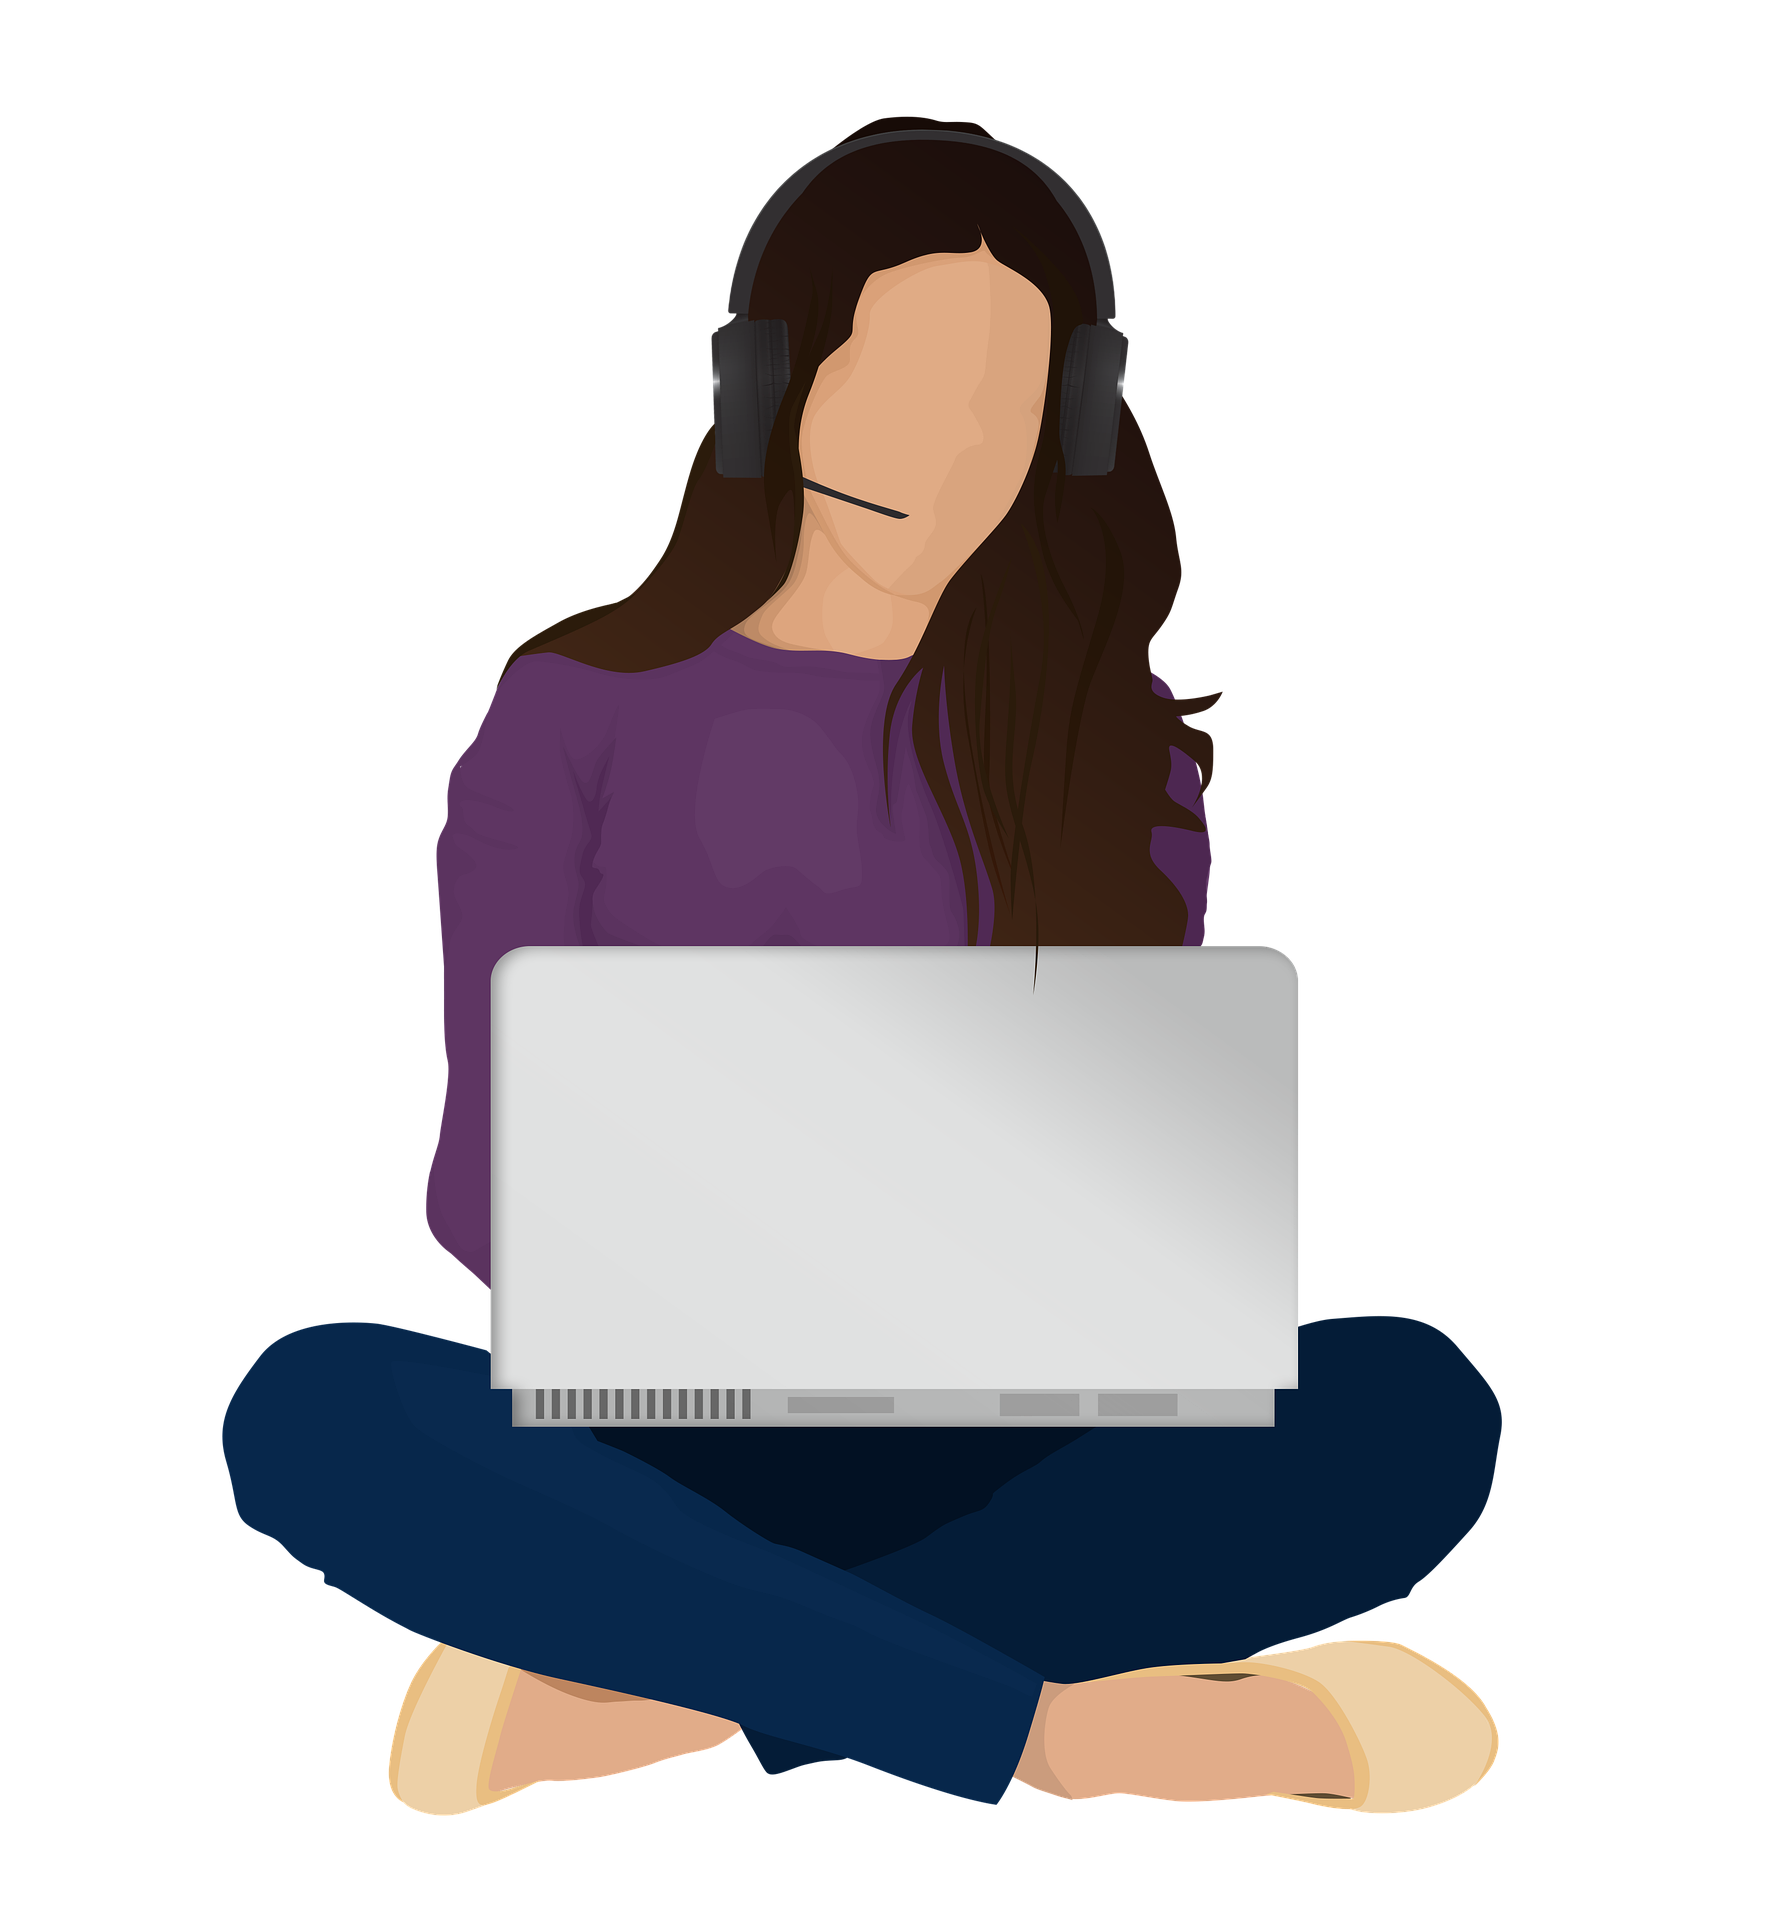 Illustration of woman working on laptop with headset